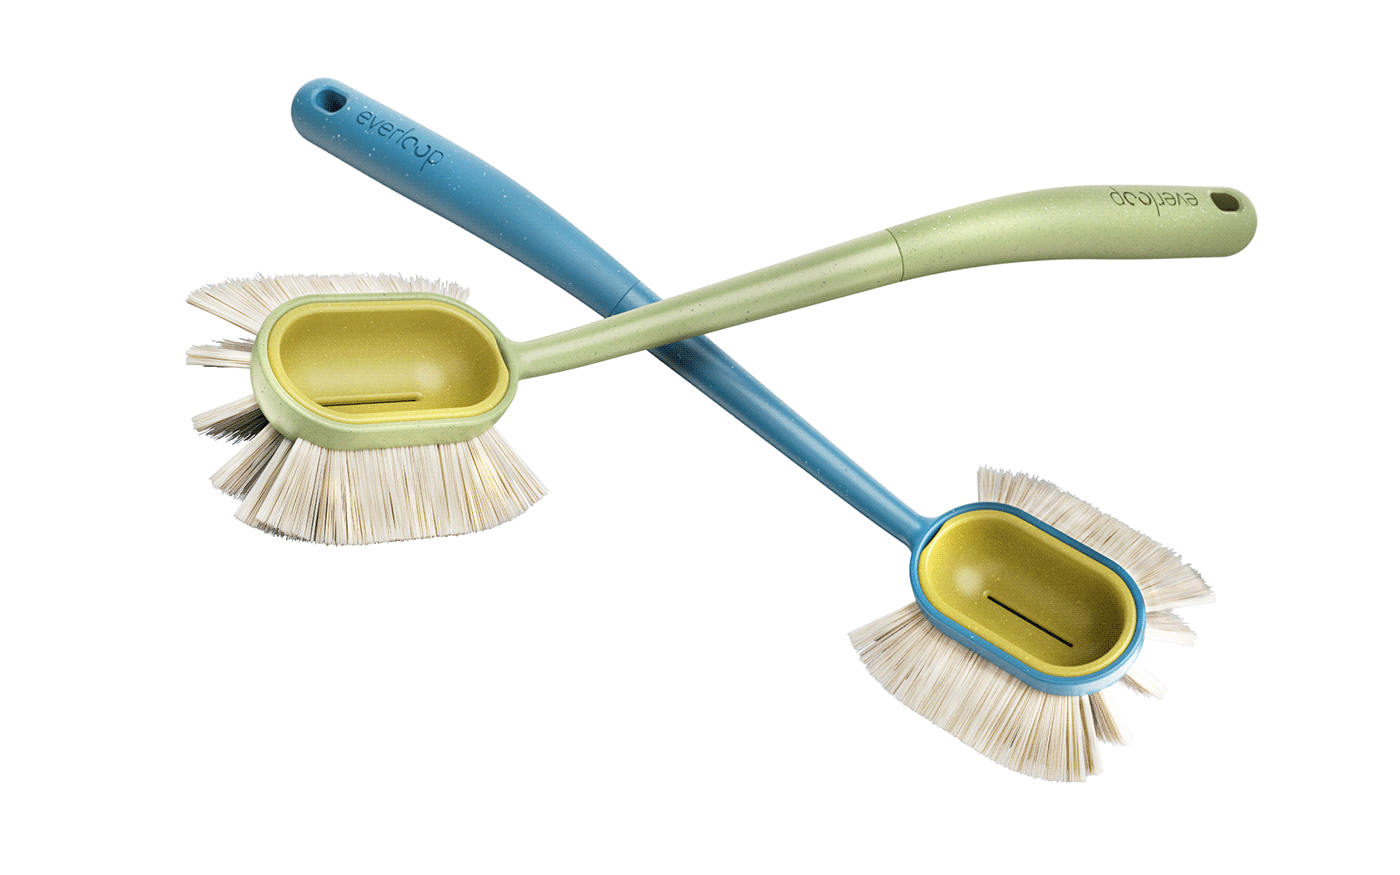 bamboo design Dish Brush eco industrialdesign productdesign reciclyng sustaintable Packaging rendering